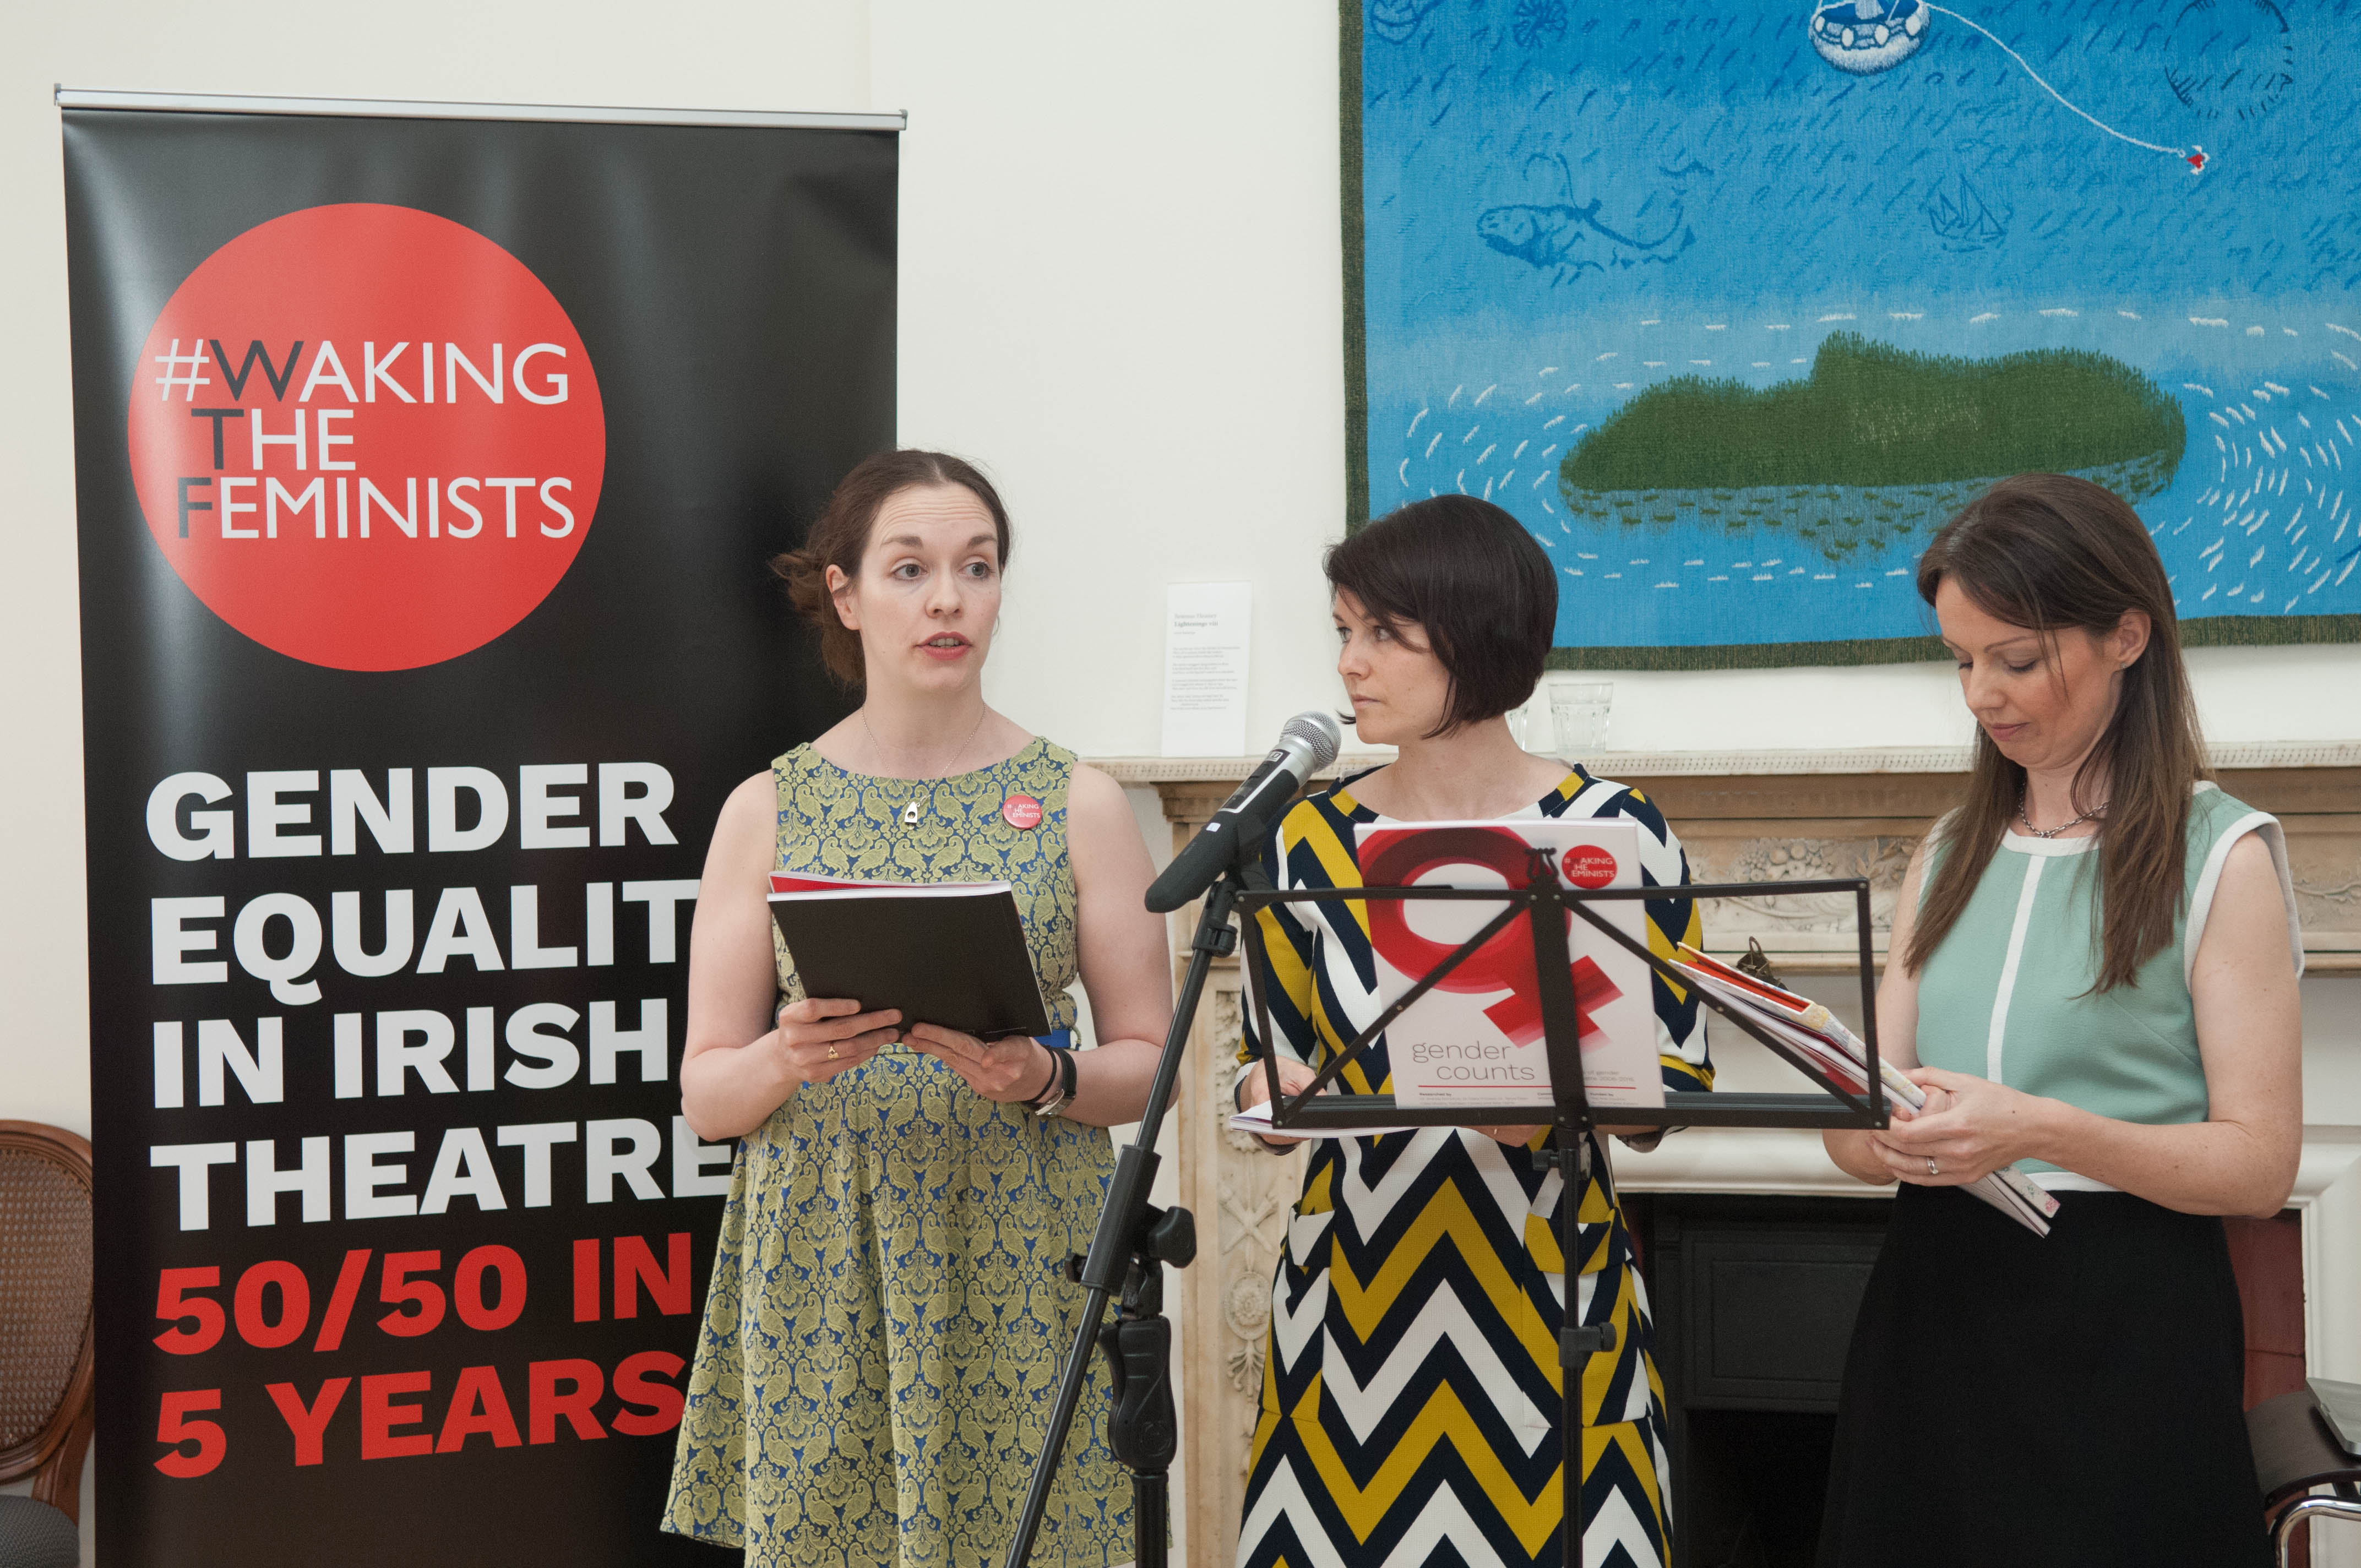 Dr Tanya Dean, Dr Brenda Donhue and Dr Ciara O'Dowd at the launch of 'Gender Counts' by Waking the Feminists